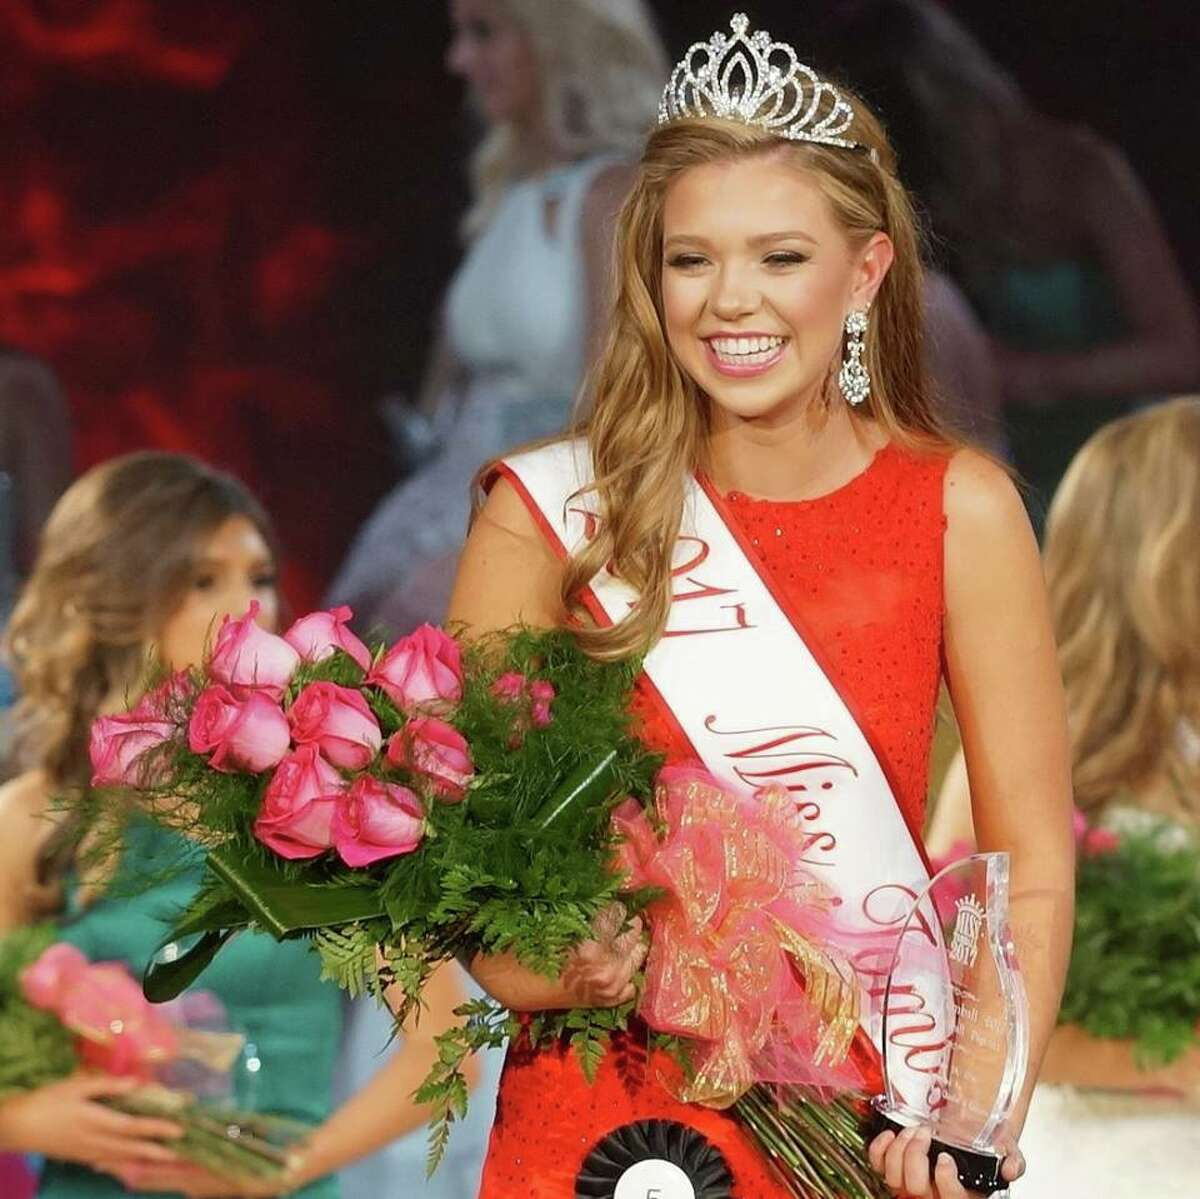 The 2018 Miss Tomball Pageant will be hosted at 7 p.m. at the Salem Lutheran Church Worship Center at 22601 Lutheran Church Road. Teenage contestants will compete for a chance to earn a scholarship. Kyla Hall is Miss Tomball 2017.Tickets to attend the pageant are available for $20 at the Greater Tomball Chamber of Commerce or at the door before the event.